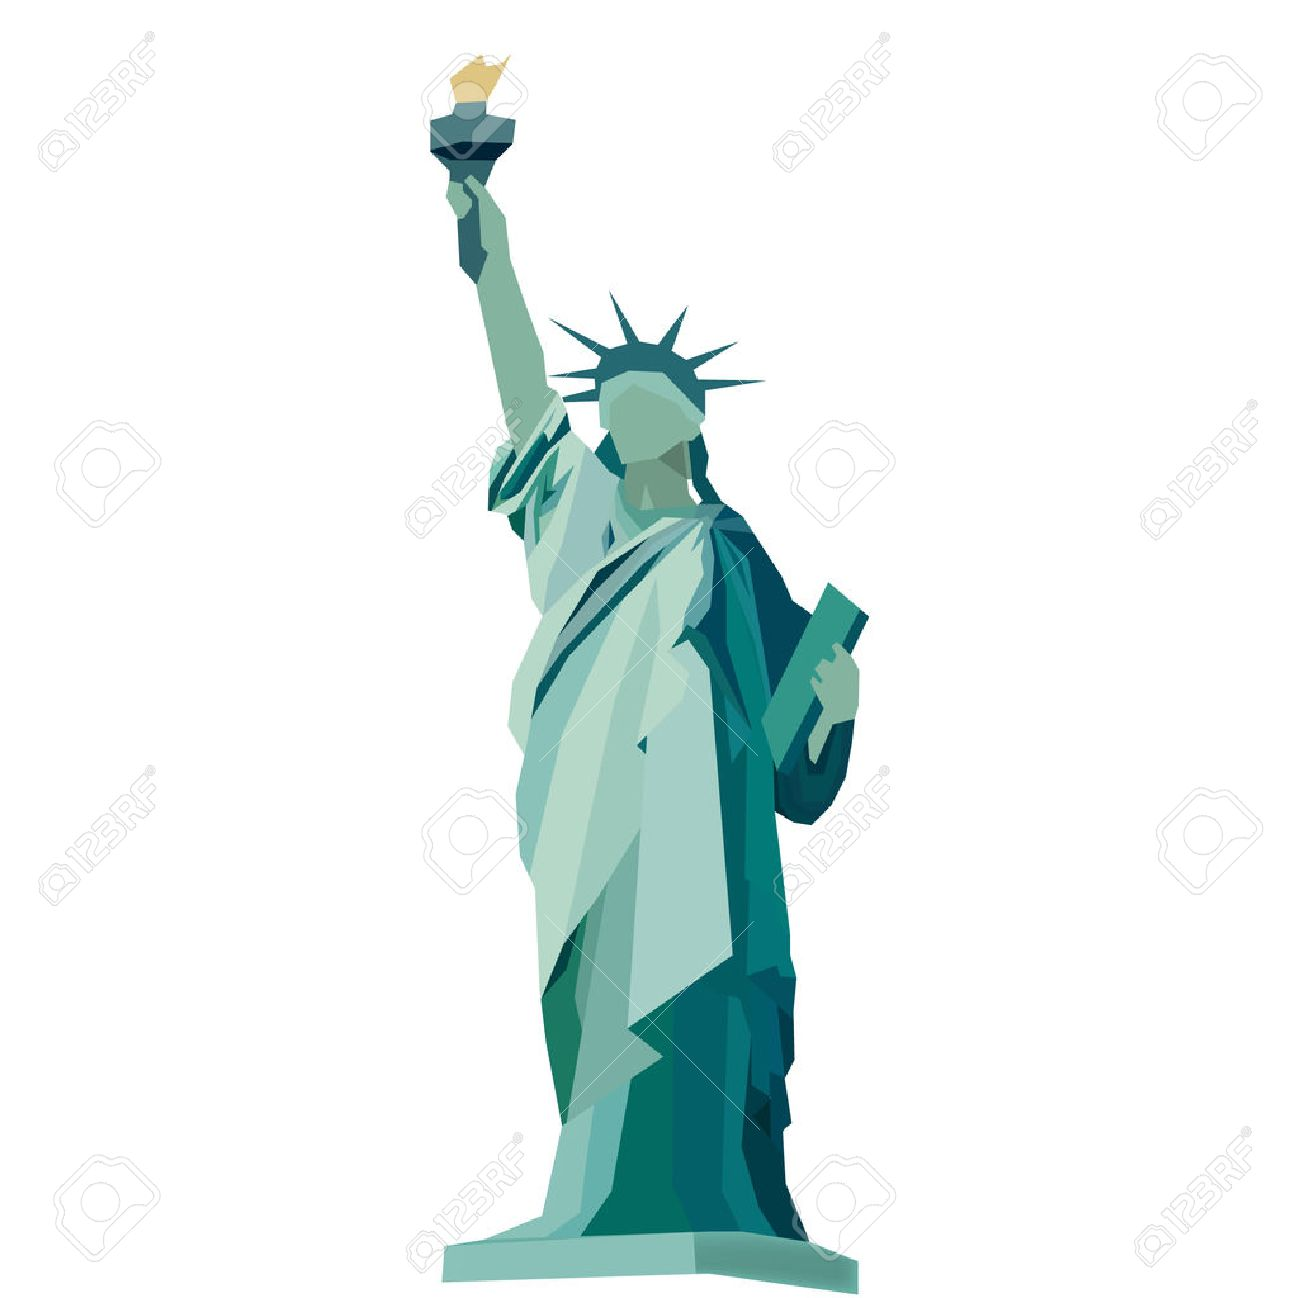 statue of liberty vector royalty free cliparts vectors and stock rh 123rf com statue of liberty vector free statue of liberty vector free download